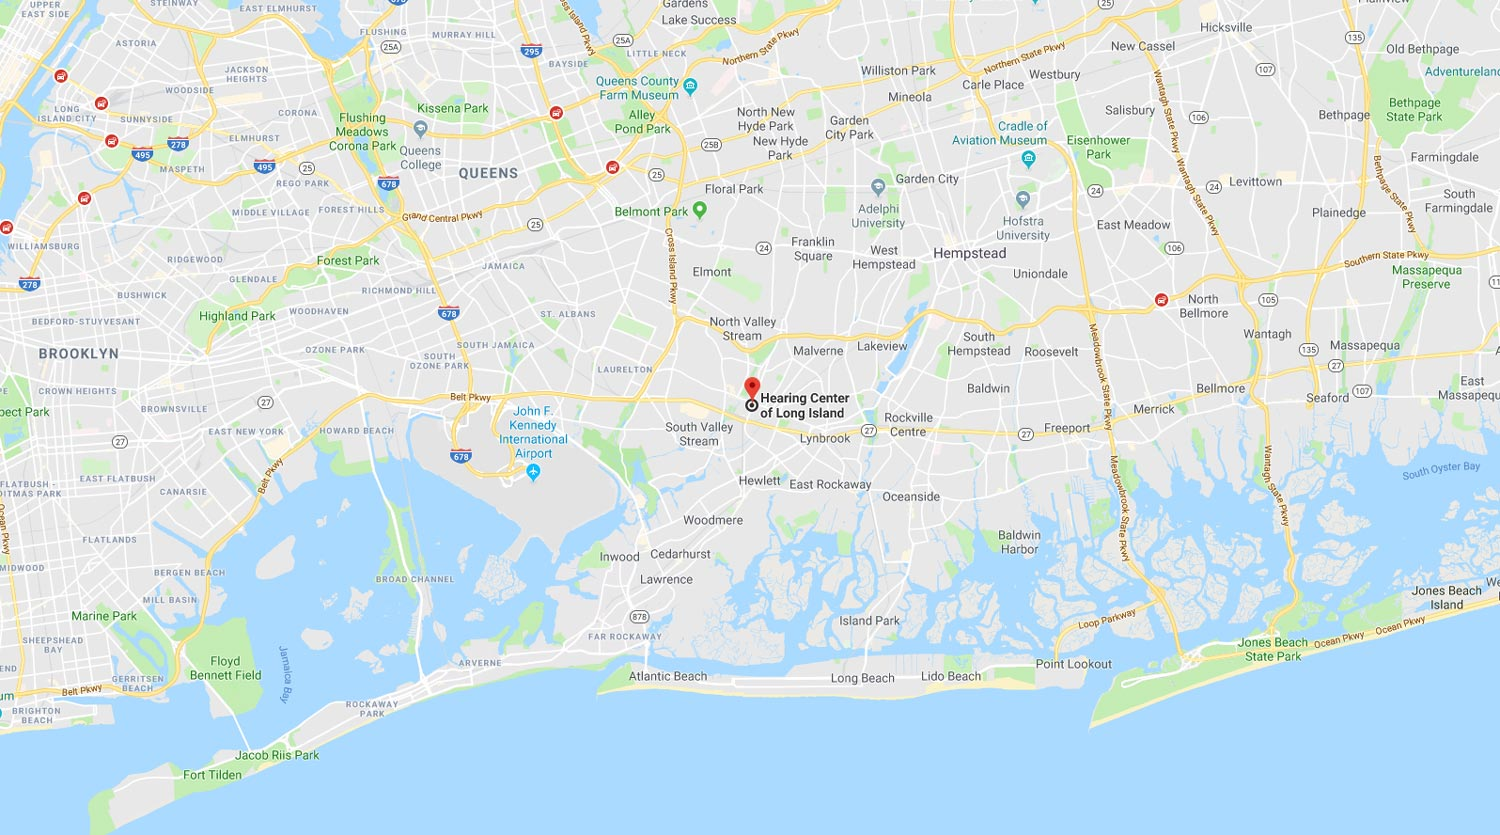 hearing center of long island map